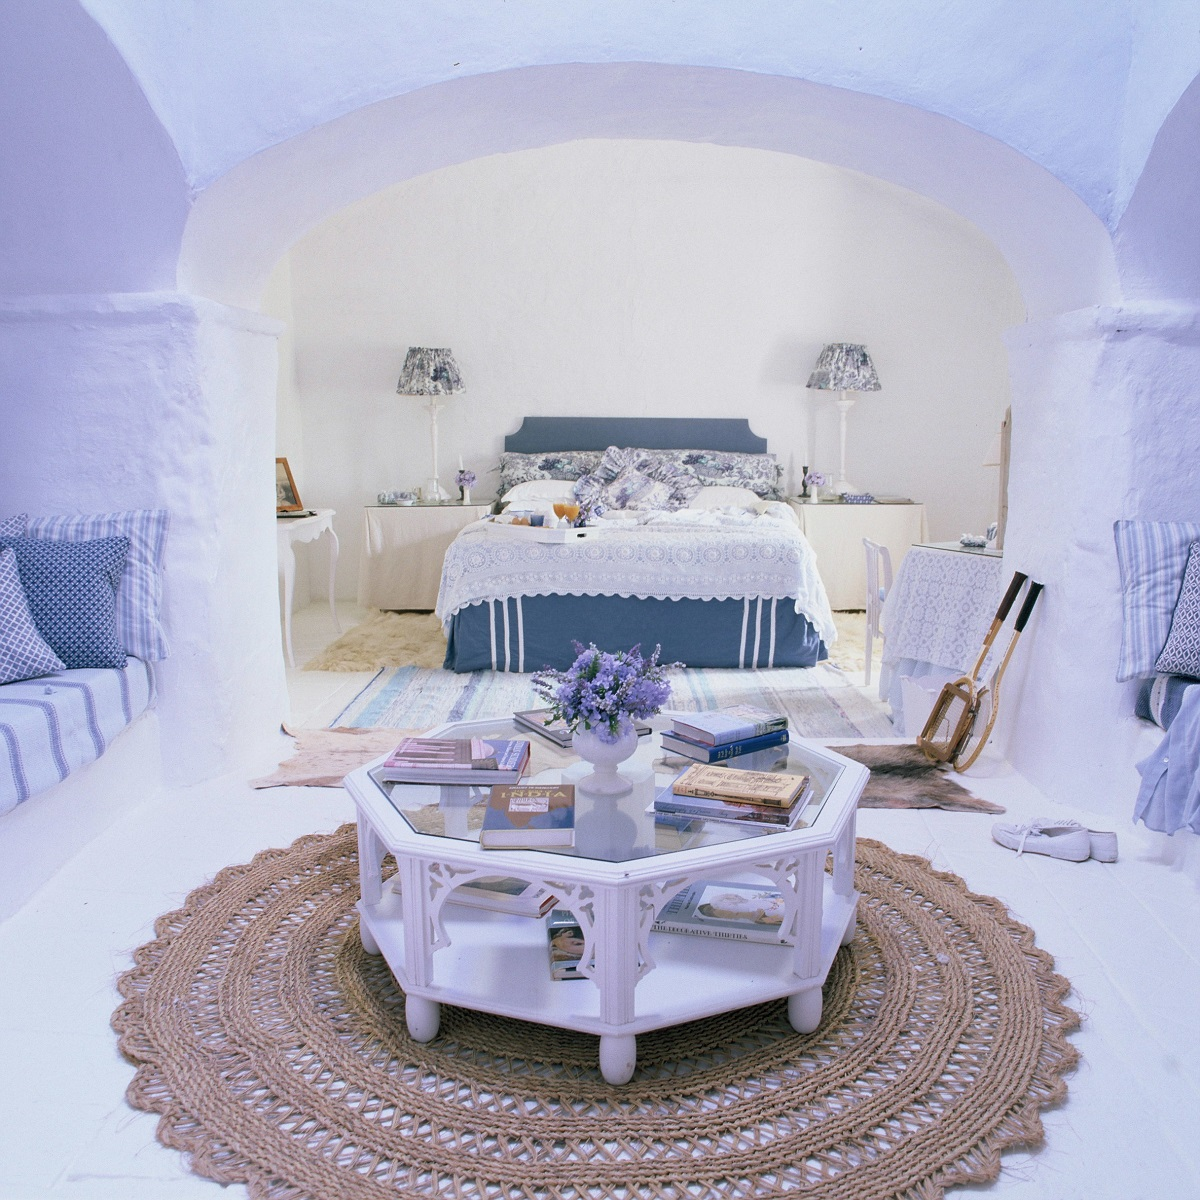 dream bedroom Dream bedrooms from all around the world Pt II trasierra spain white bedroom decor blue color palette cuddly bedroom country chic whitewashed walls old fashioned decor adorable white and blue